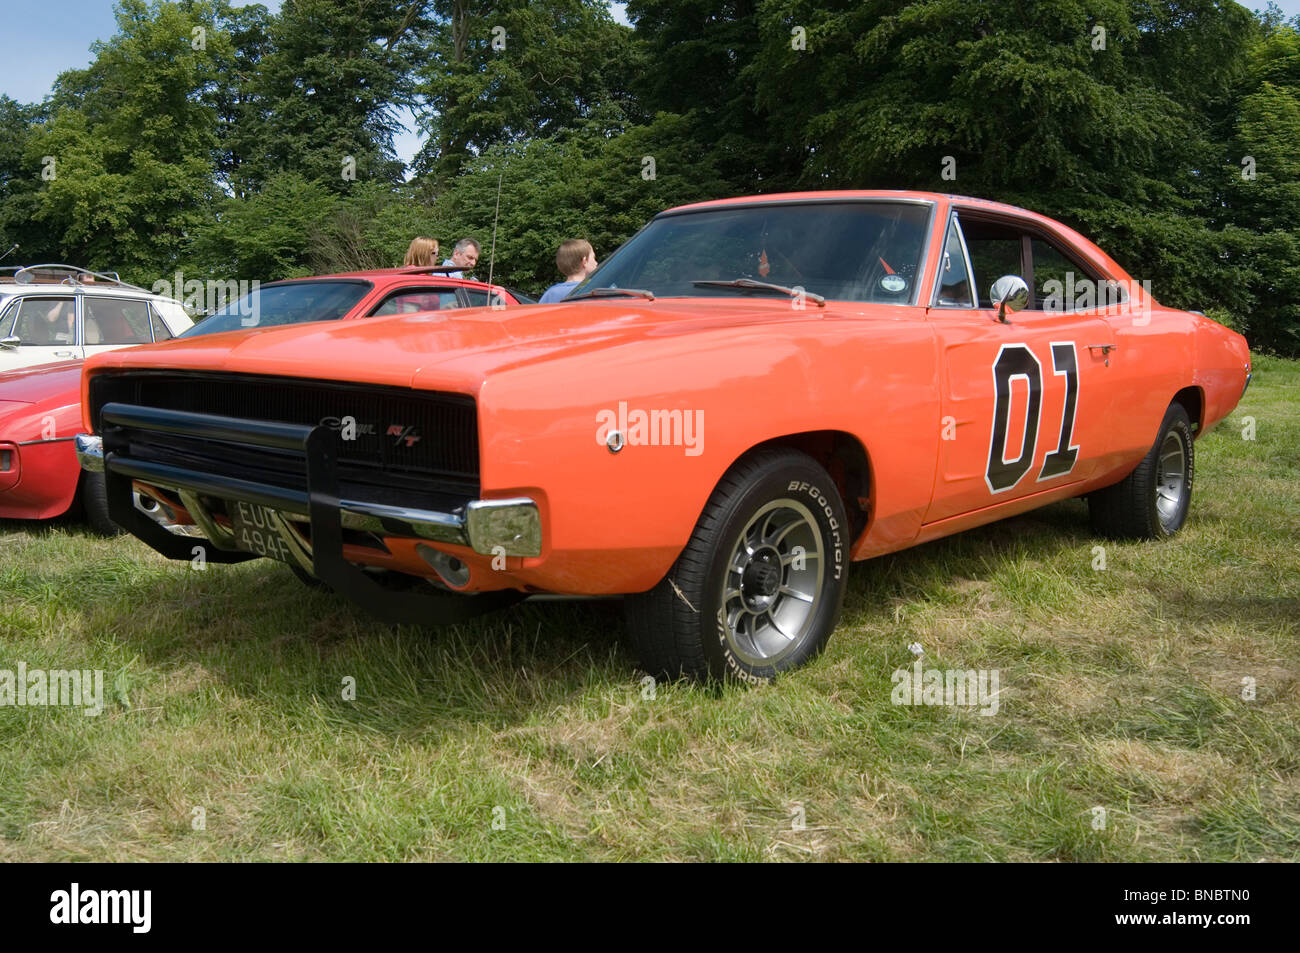 How Many Dukes Of Hazzard Cars Were Used